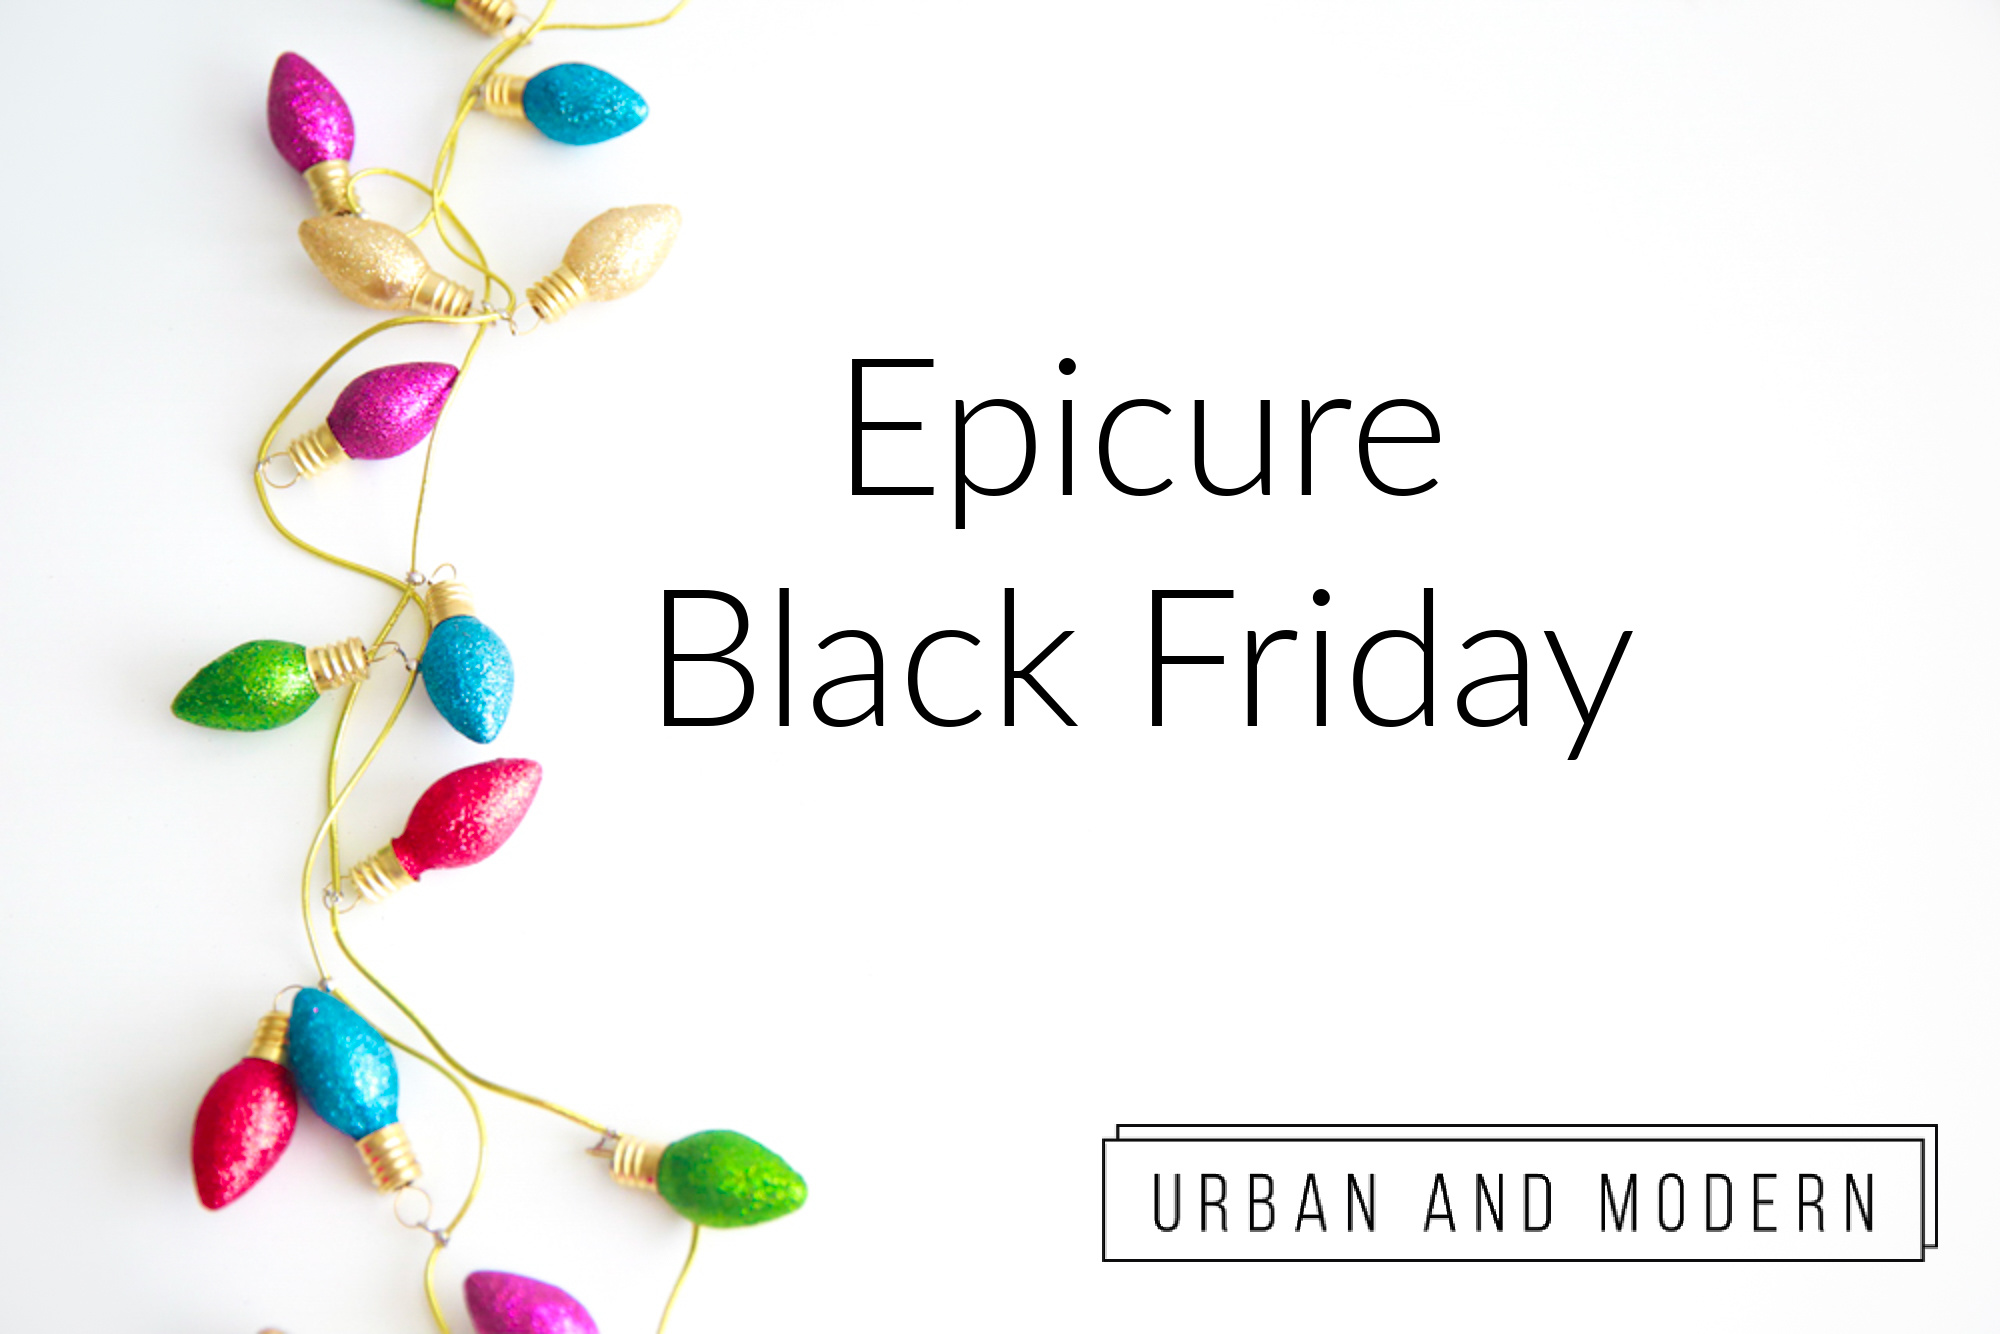 Epicure Black Friday 2020